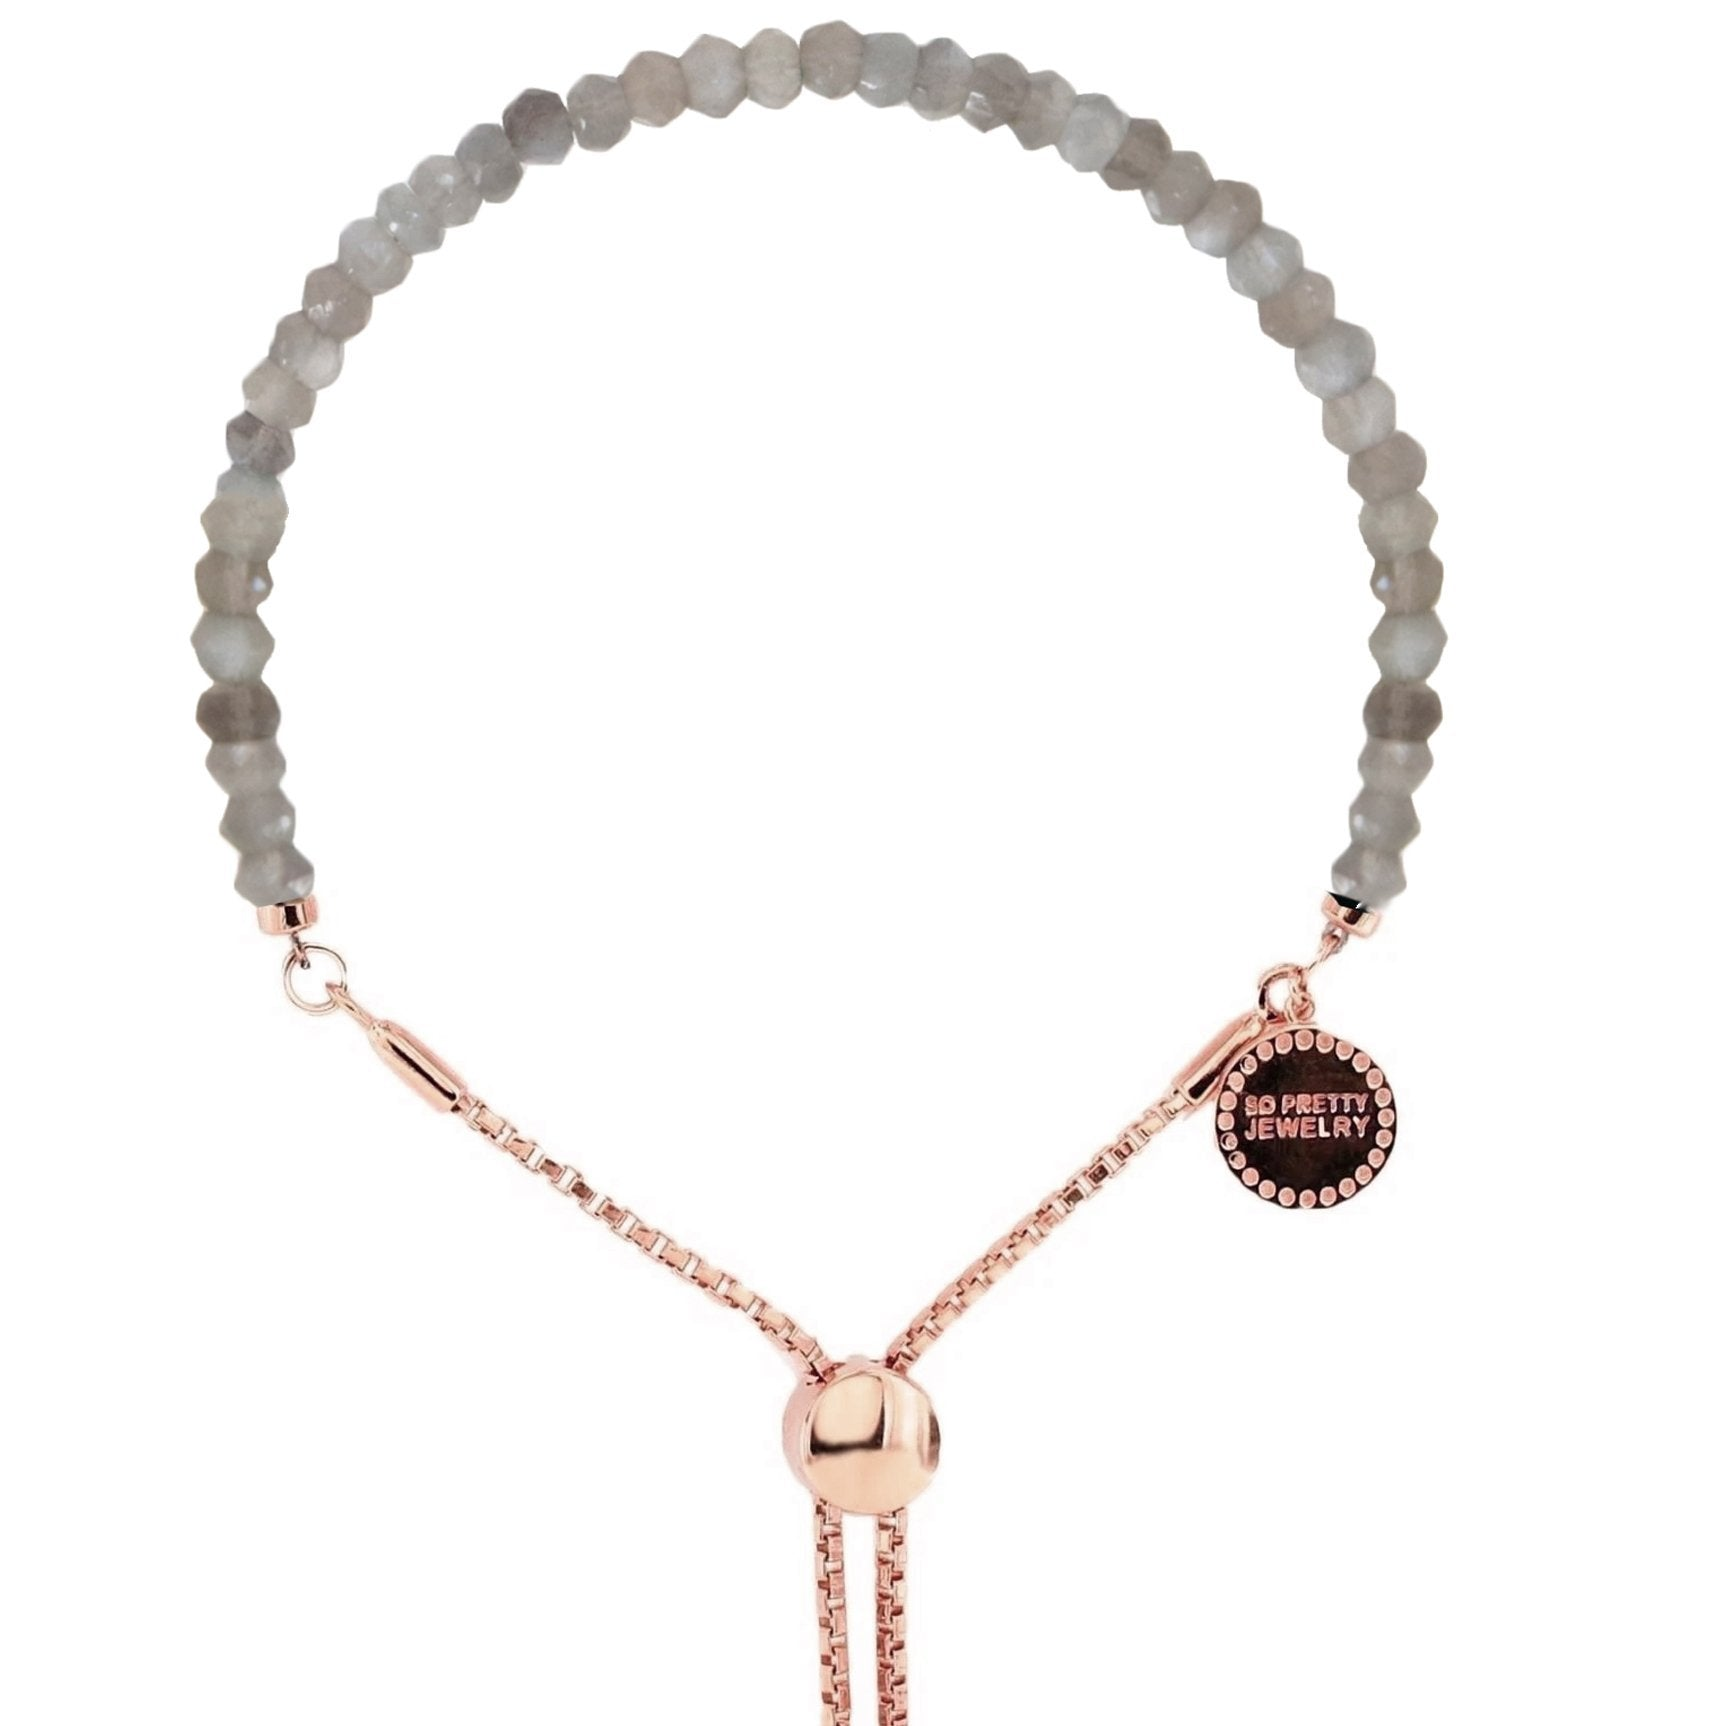 ICONIC ADJUSTABLE BRACELET - GREY MOONSTONE & ROSE GOLD - SO PRETTY CARA COTTER